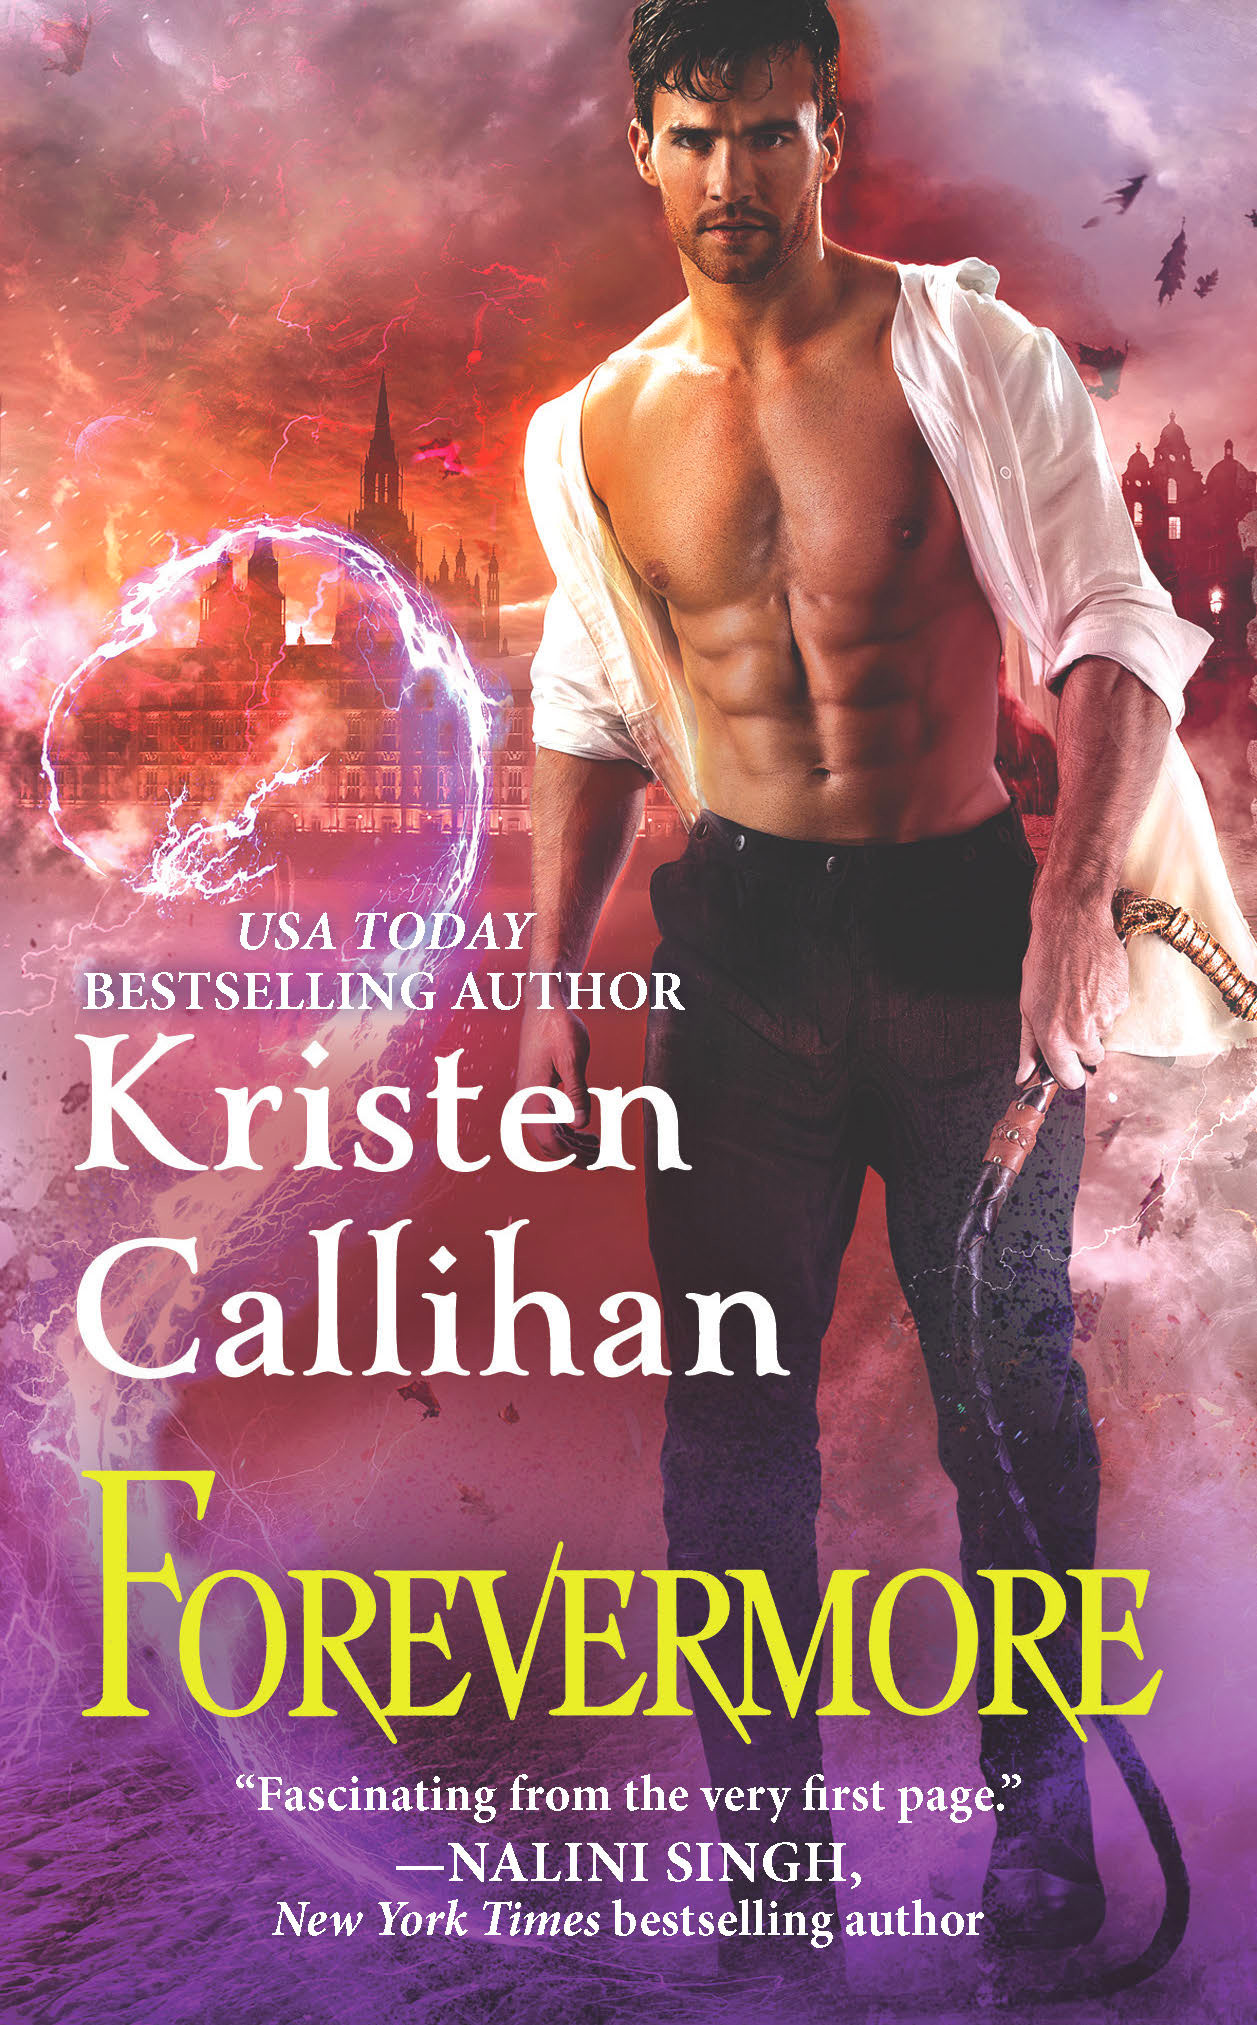 Blog Tour & Giveaway: Forevermore by Kristen Callihan